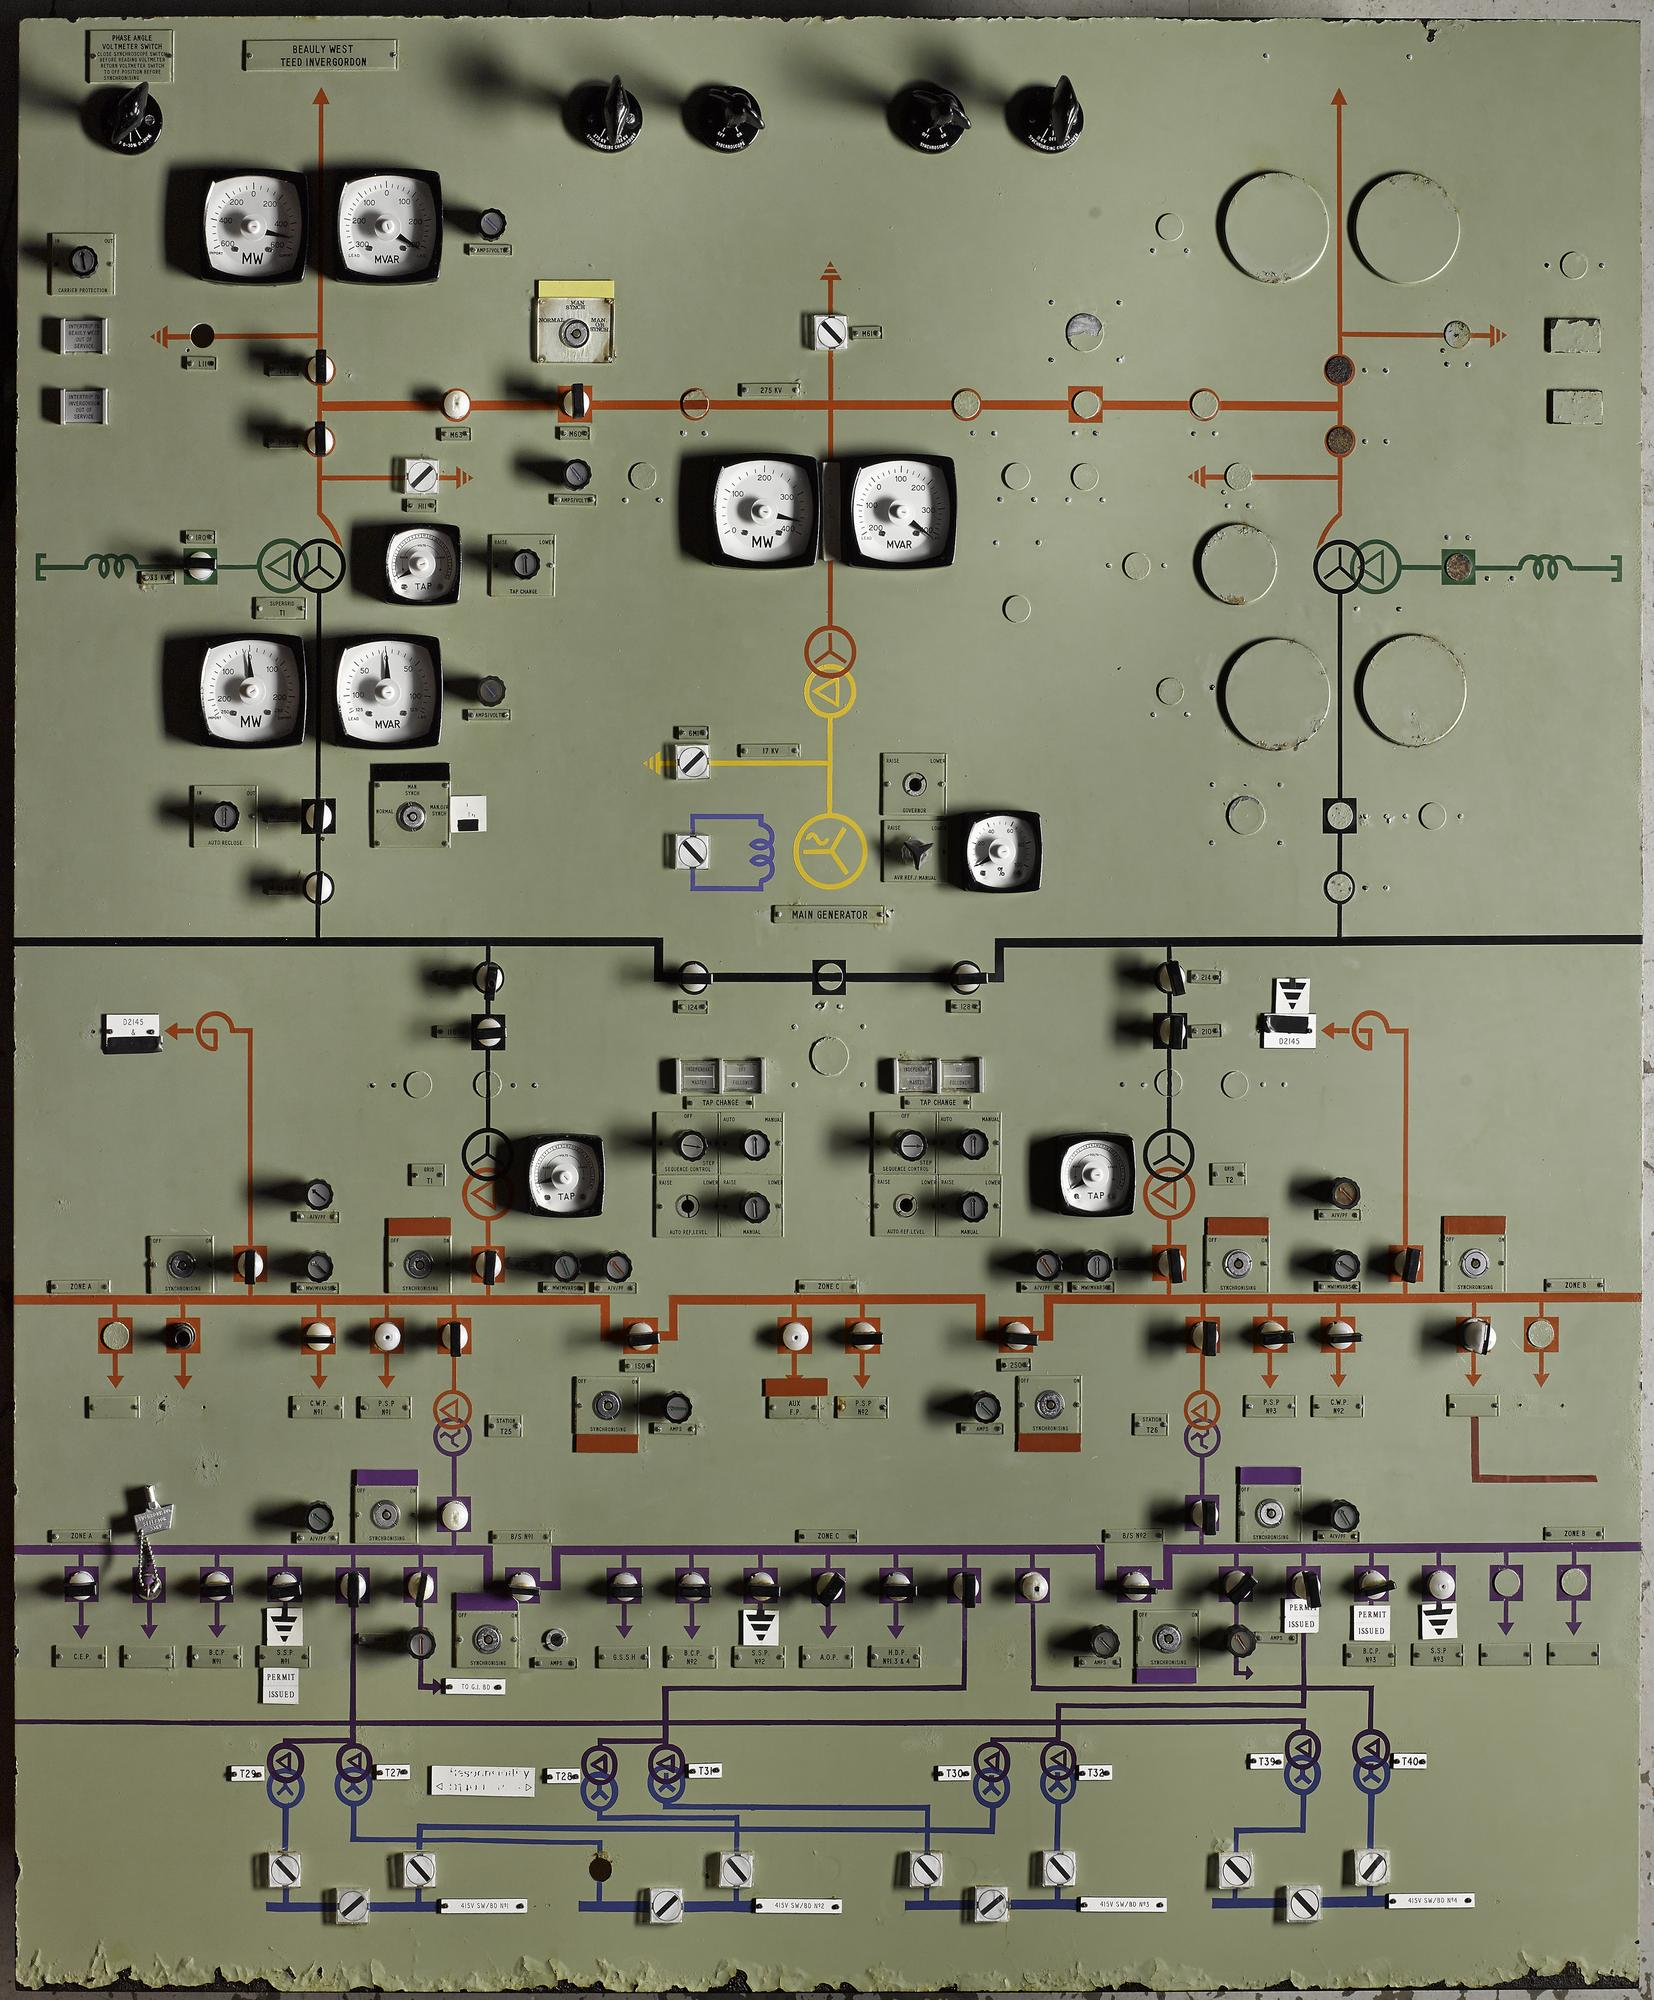 Electrical panel, used in the Prototype fast Reactor control room, Dounreay fast reactor research and development site, Caithness, 1970.